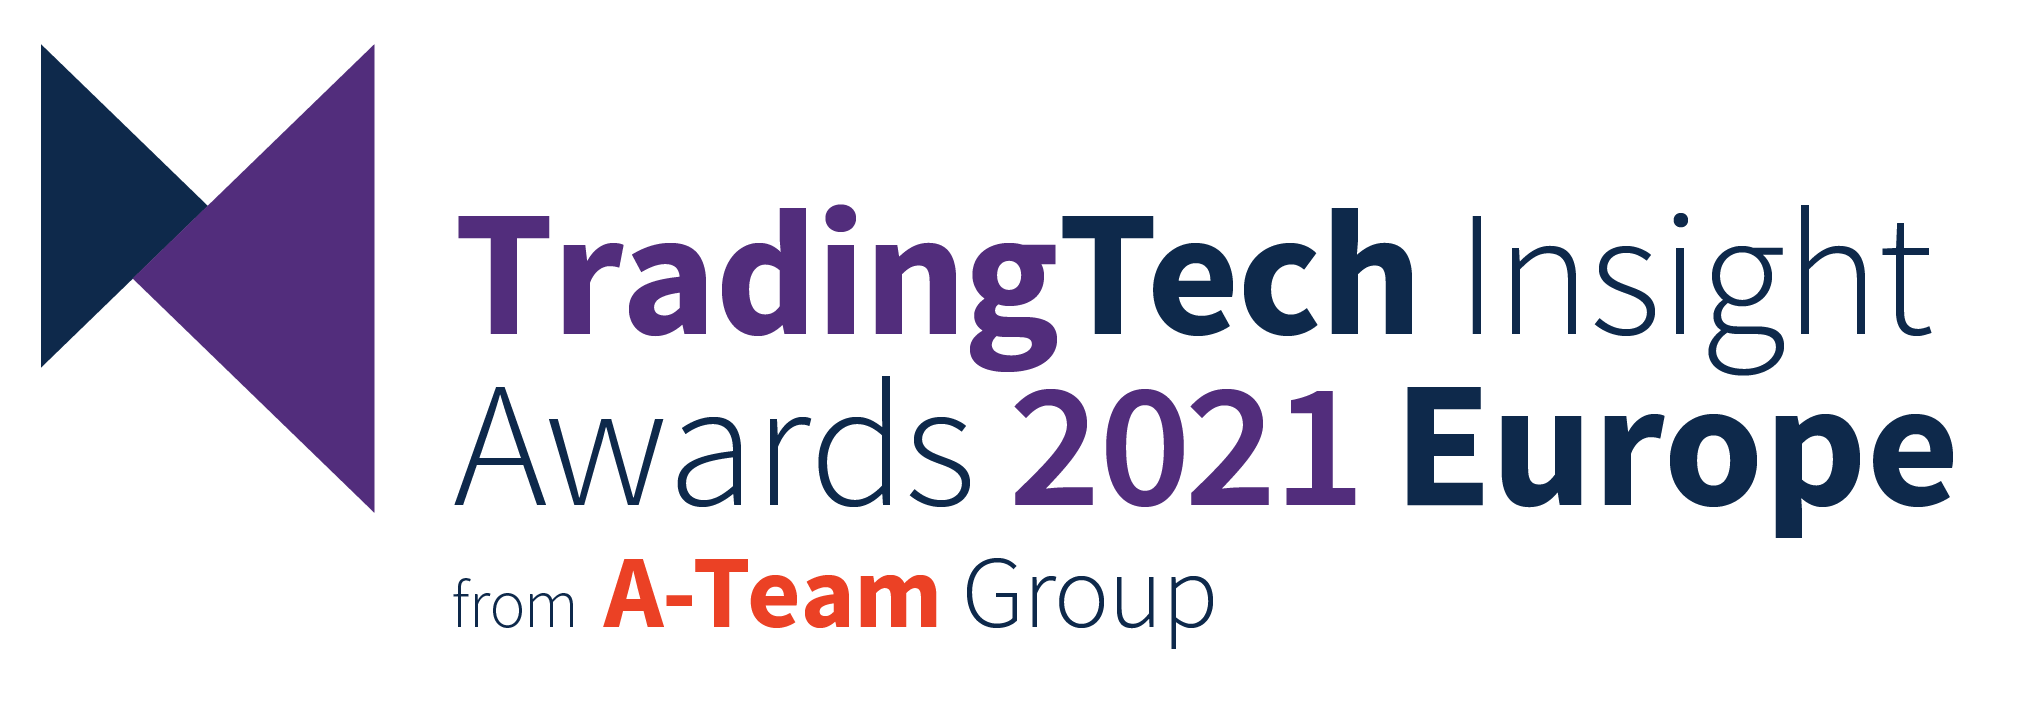 TradingTech Insight Awards 2021 Europe